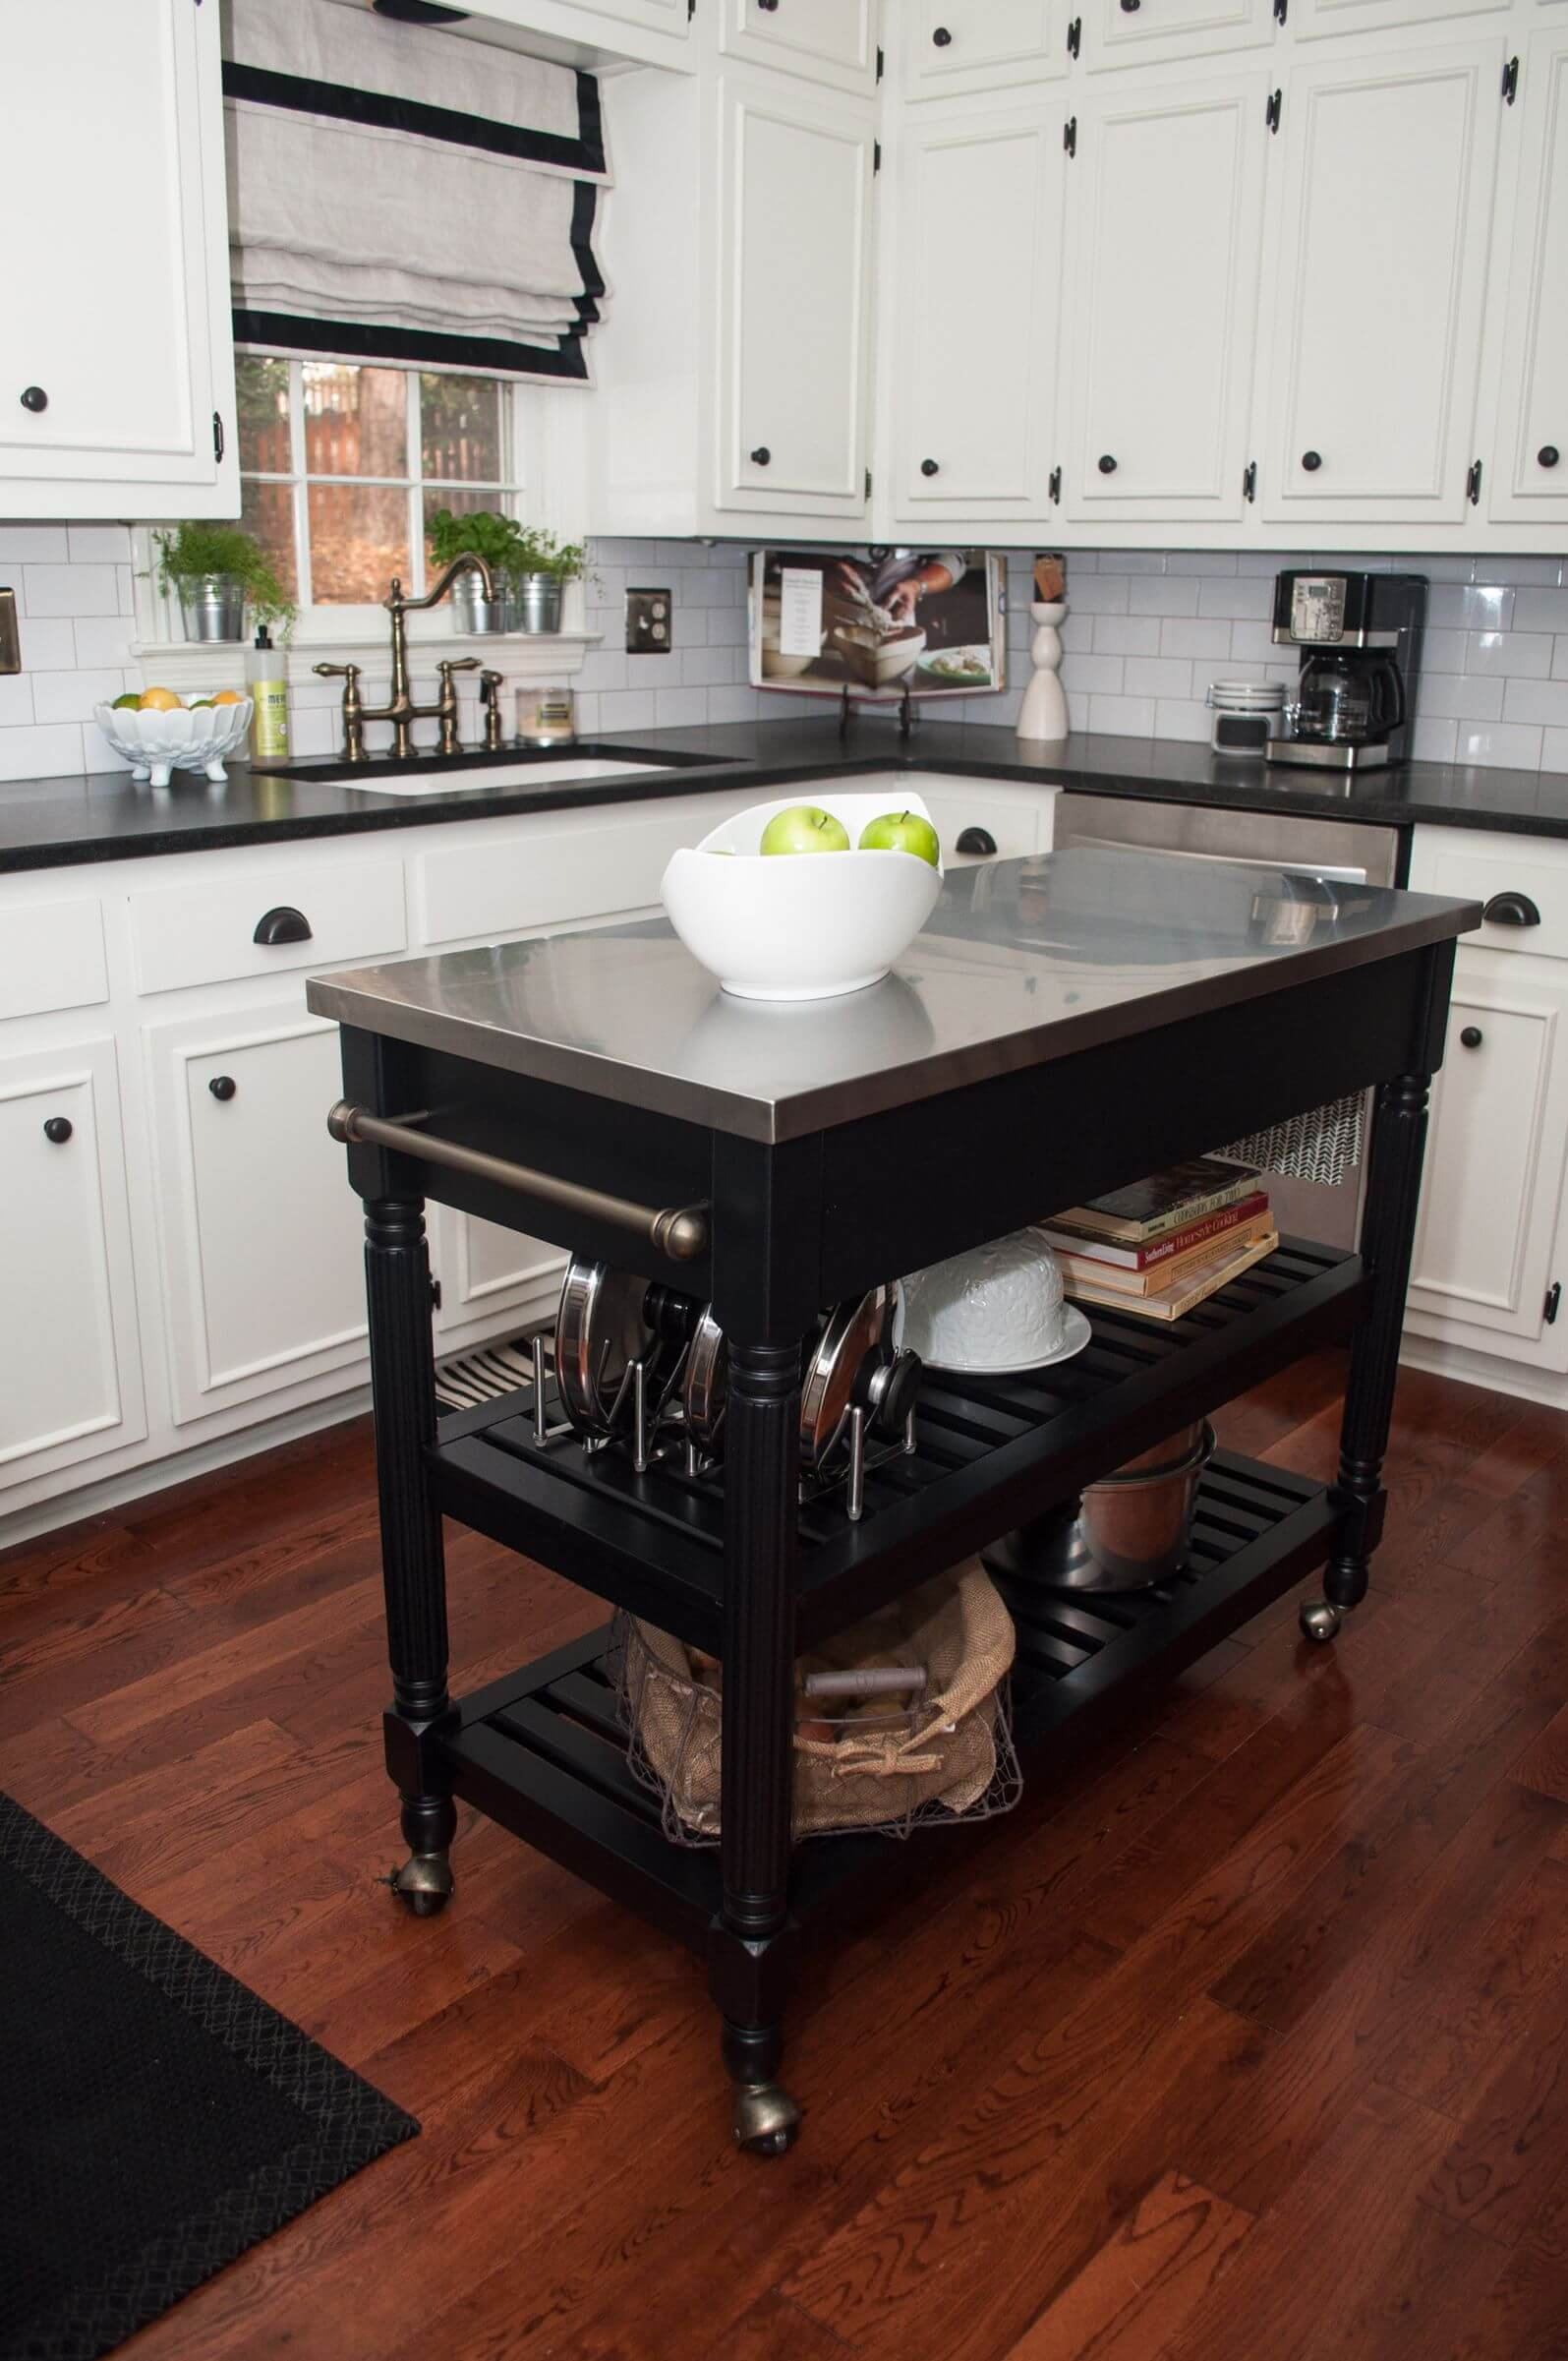 Kitchen Island On Casters 10 types of small kitchen islands on wheels | home stratosphere